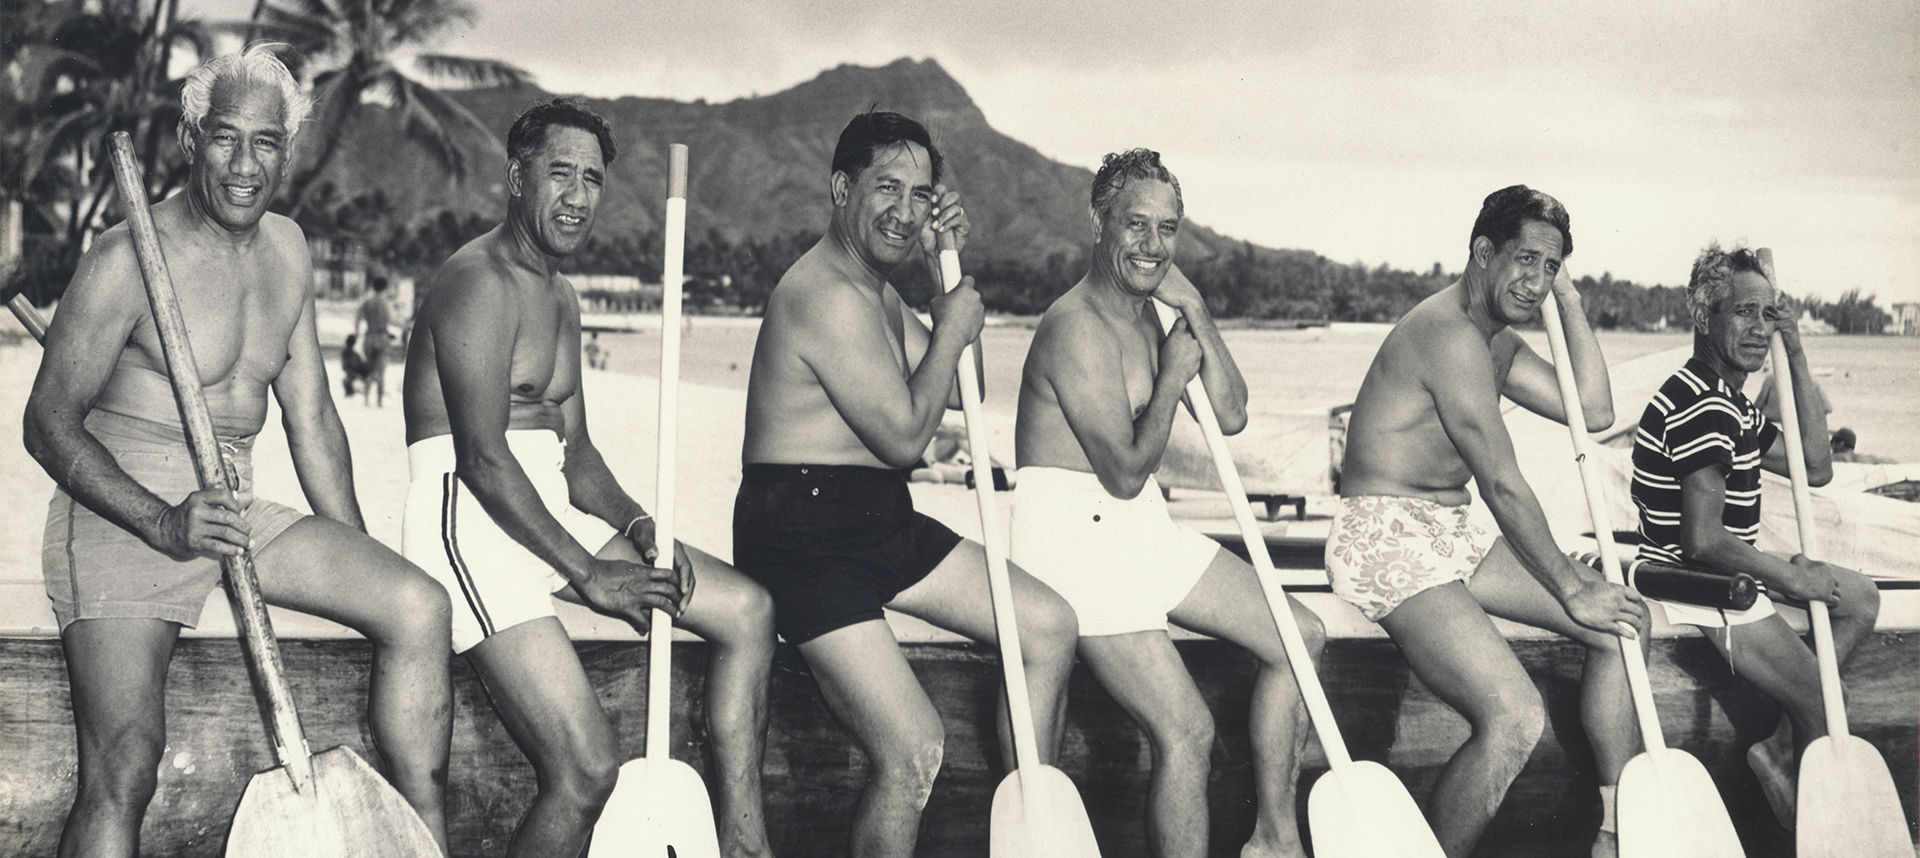 Duke and men sitting lined up by the shore with oars